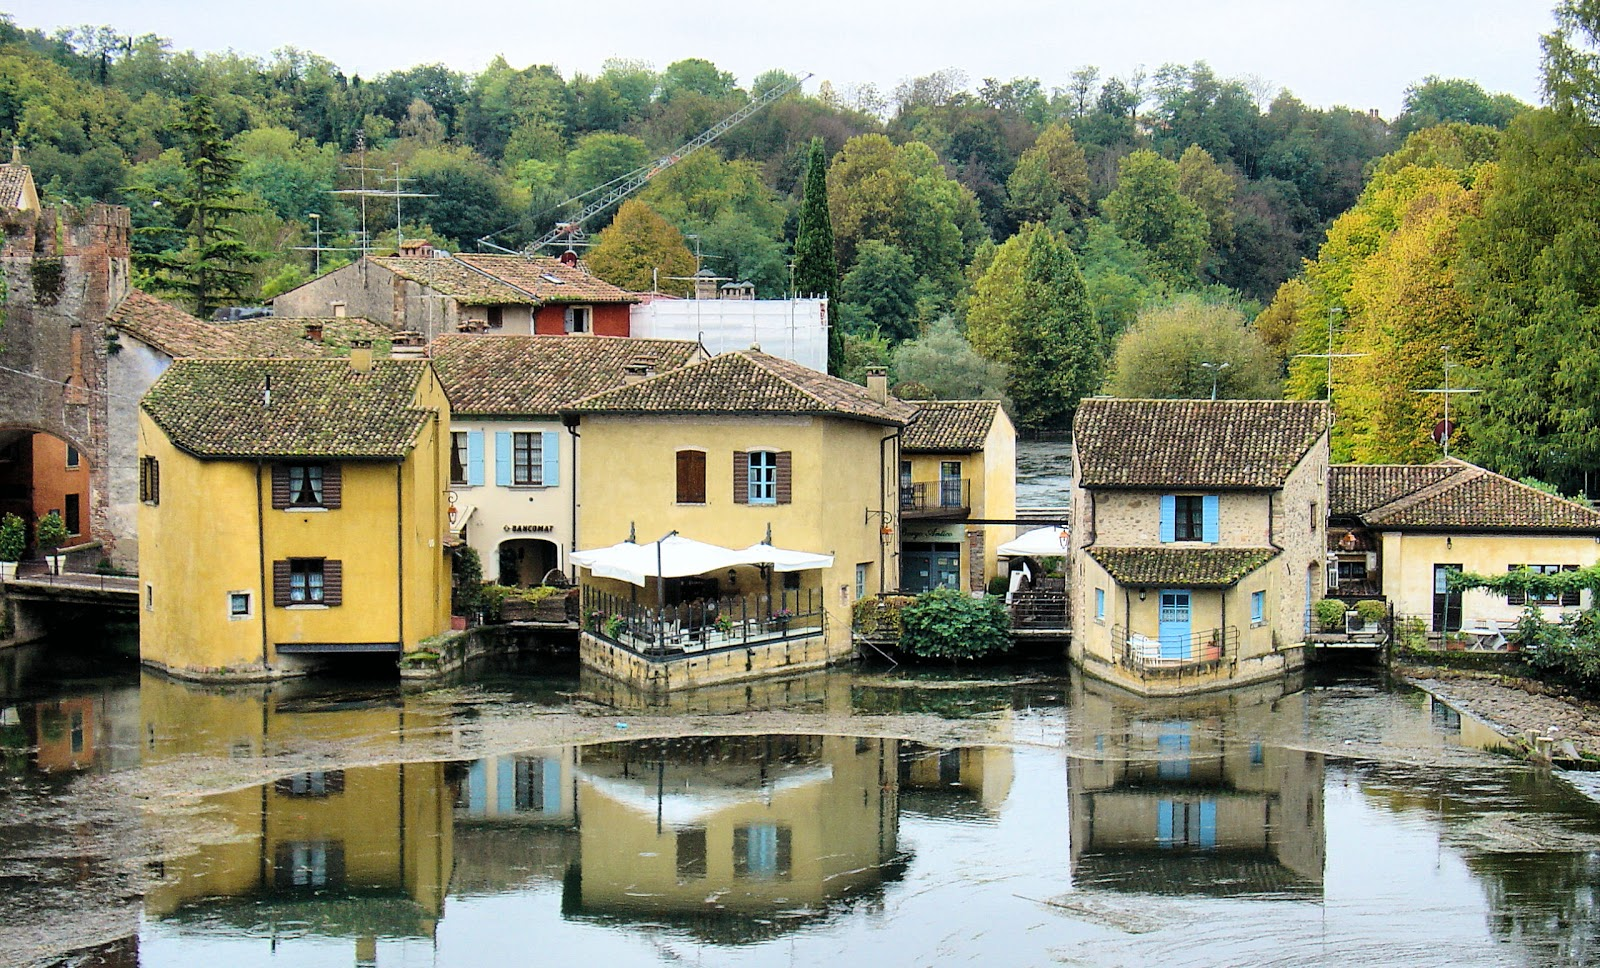 Benvenuti a Borghetto, Italy. All photography property of EuroTravelogue™ unless otherwise noted. Unauthorized use is prohibited.